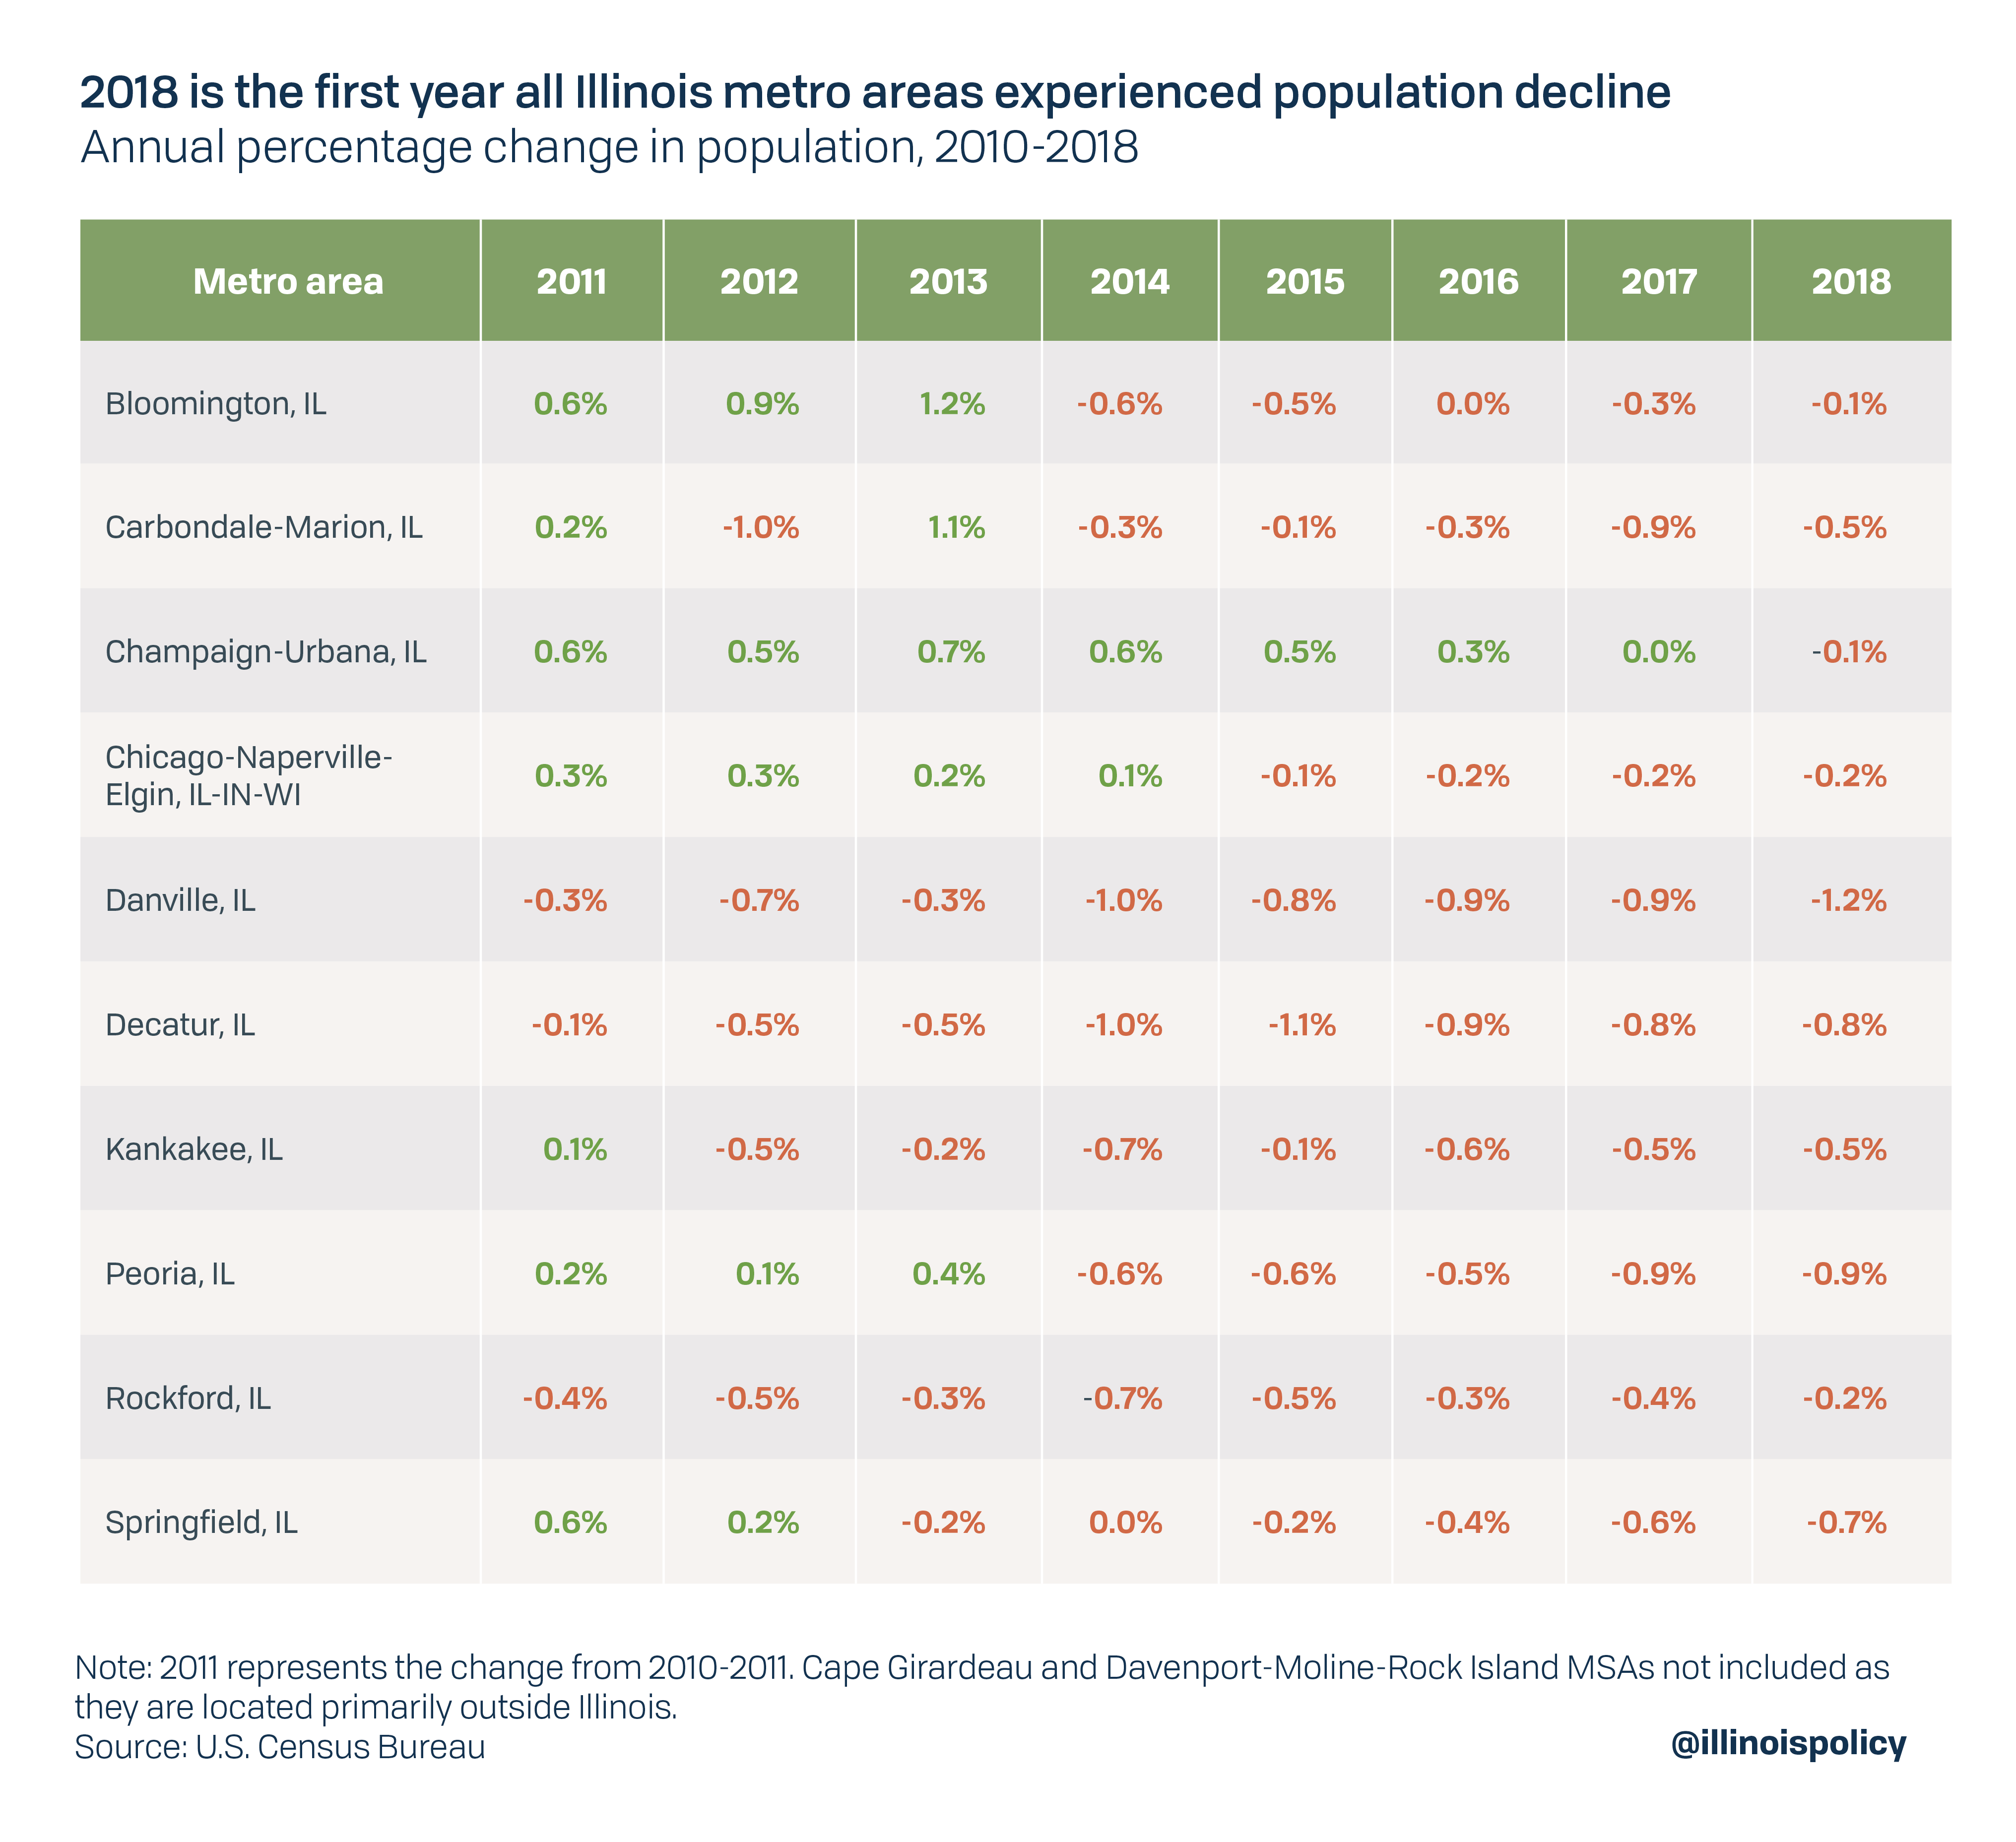 2018 is the first year all Illinois metro areas experienced population decline